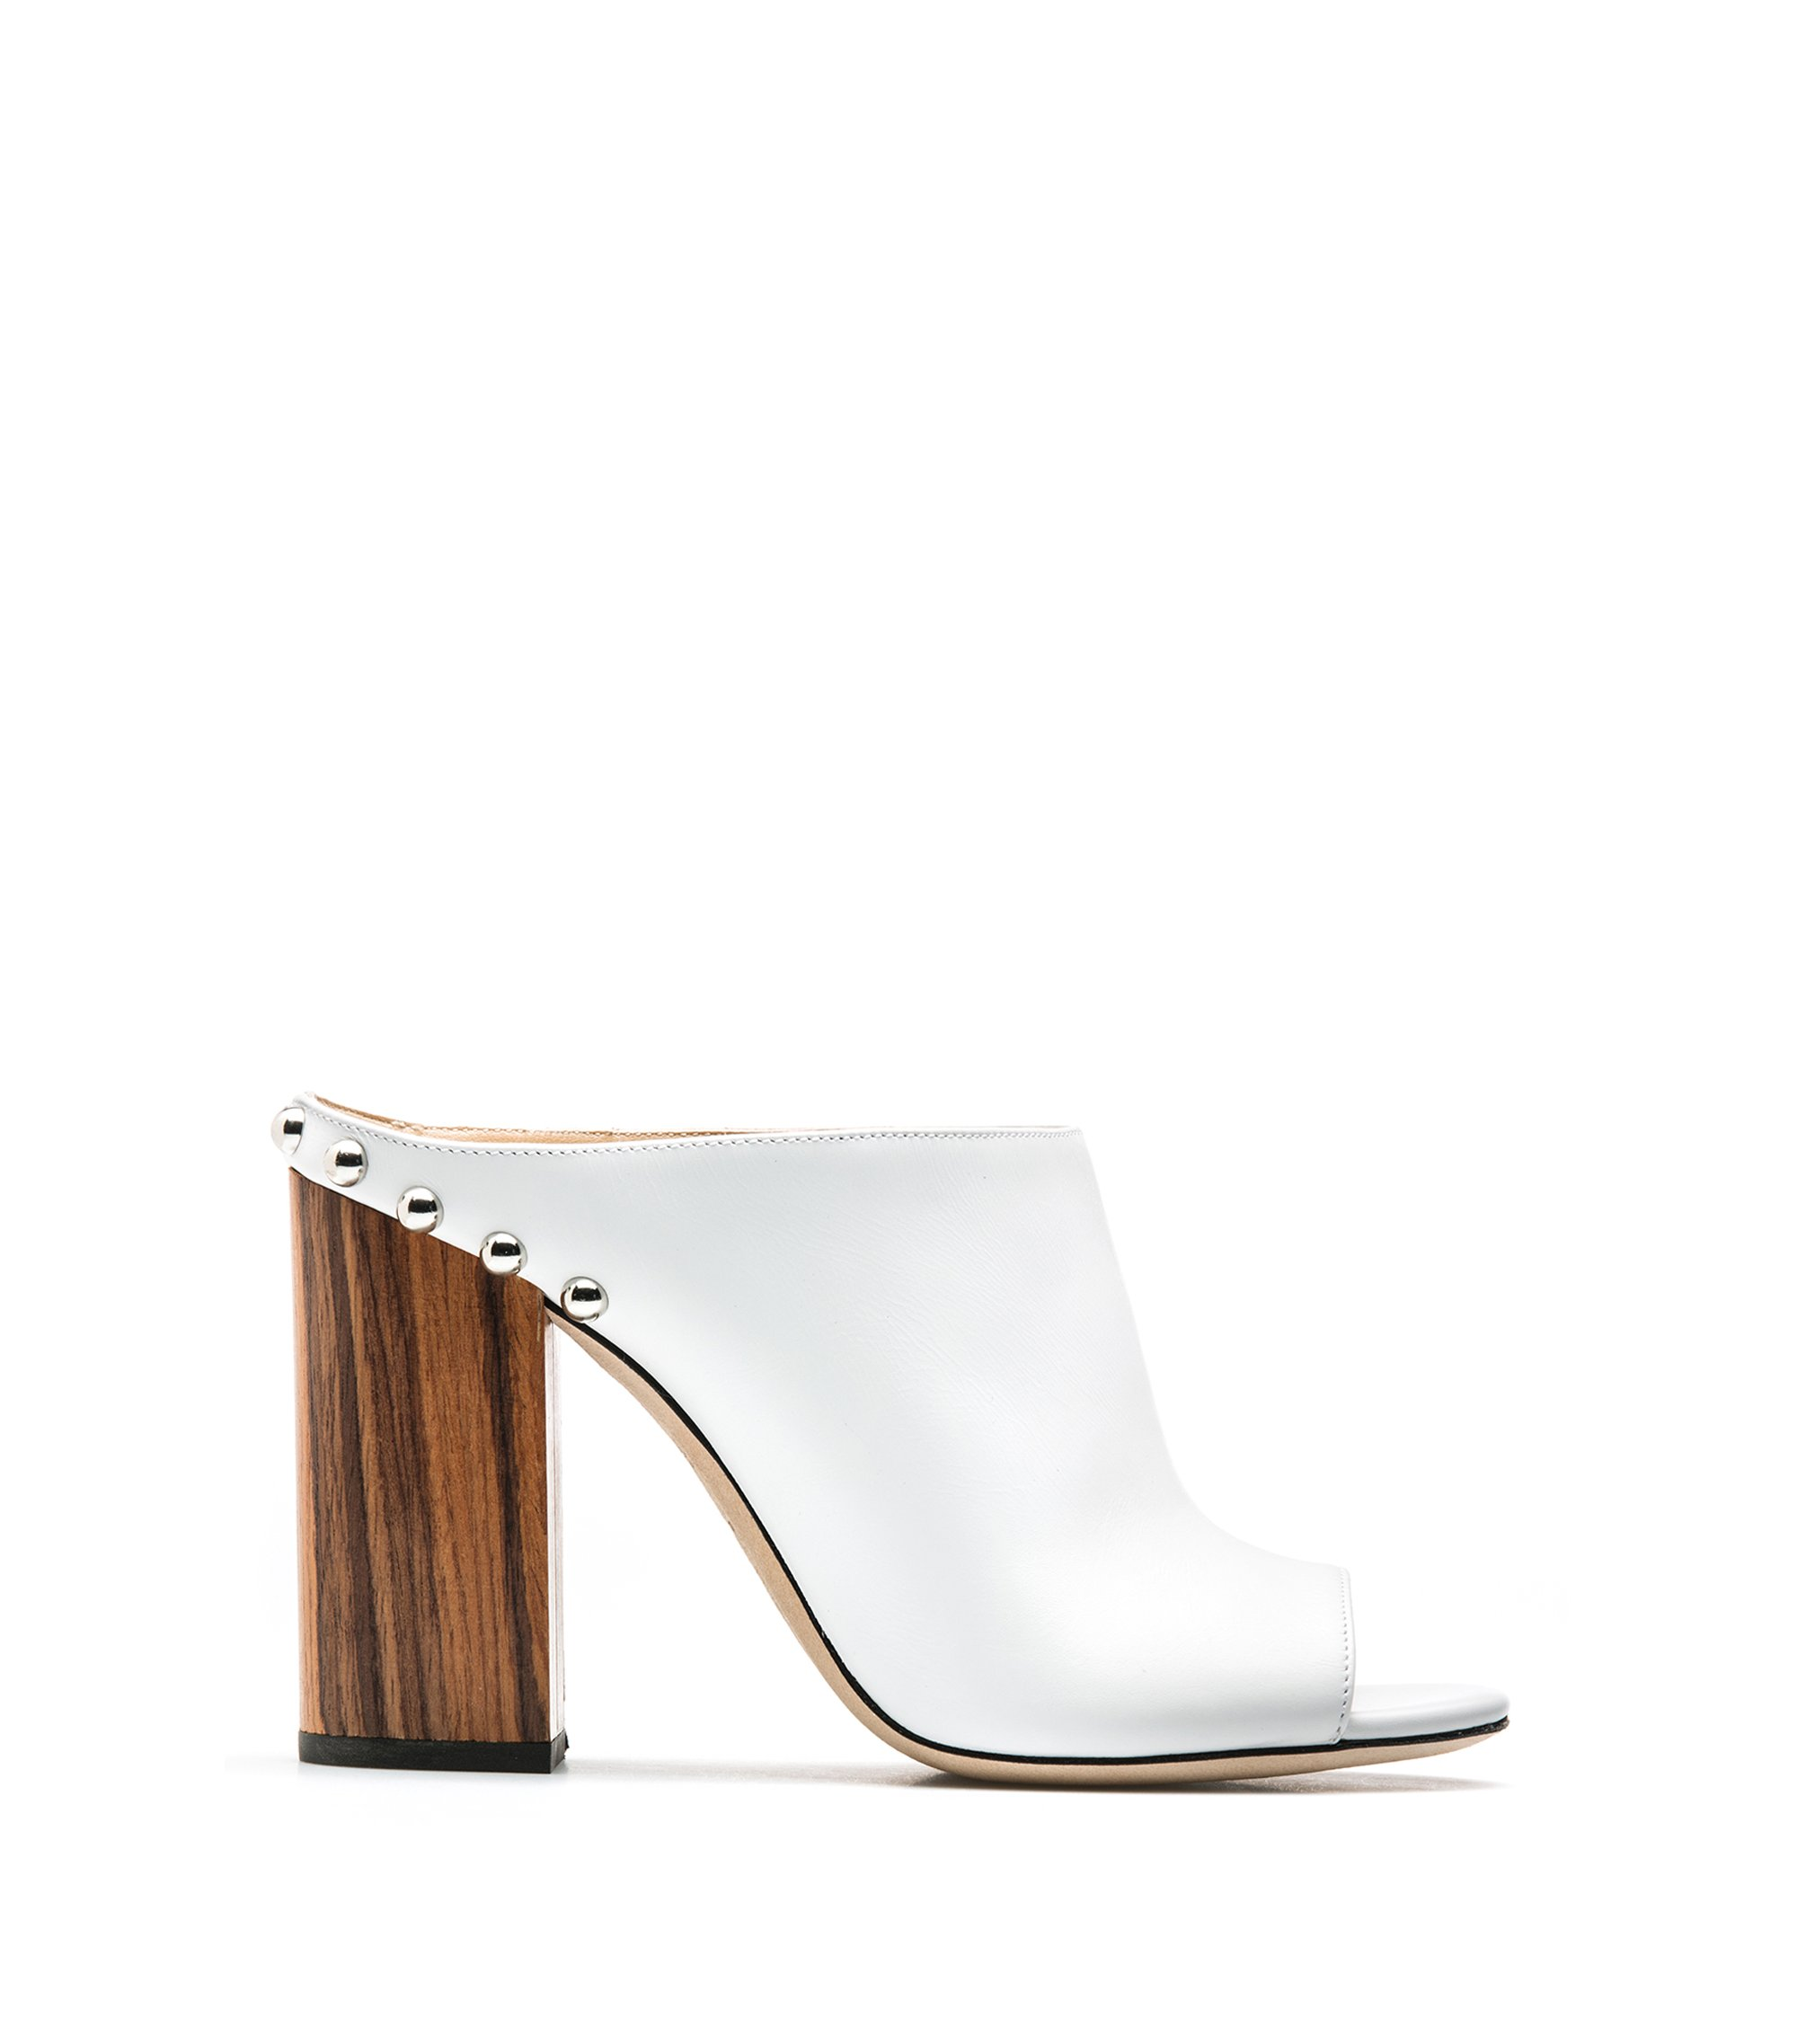 Leather open-toe mules with block heel, White